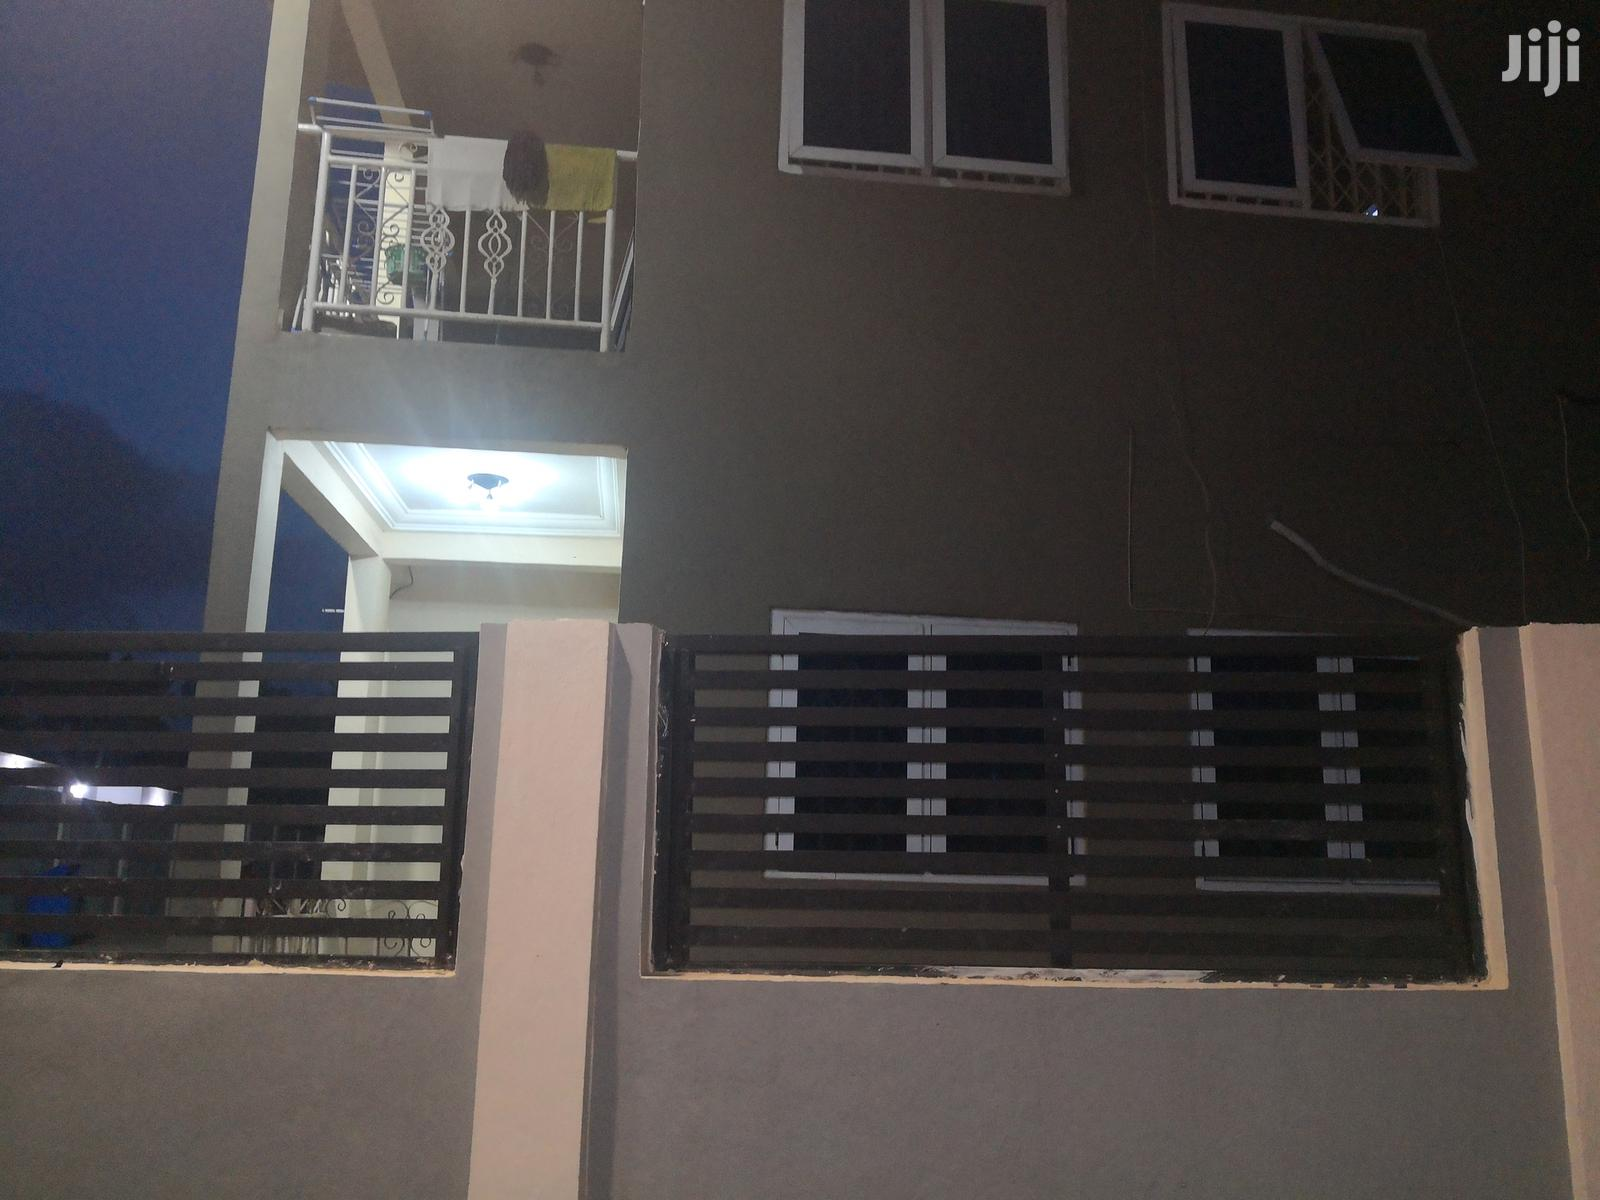 2 Bedrooms Apartment at Ashongman Estate | Houses & Apartments For Rent for sale in Ga East Municipal, Greater Accra, Ghana